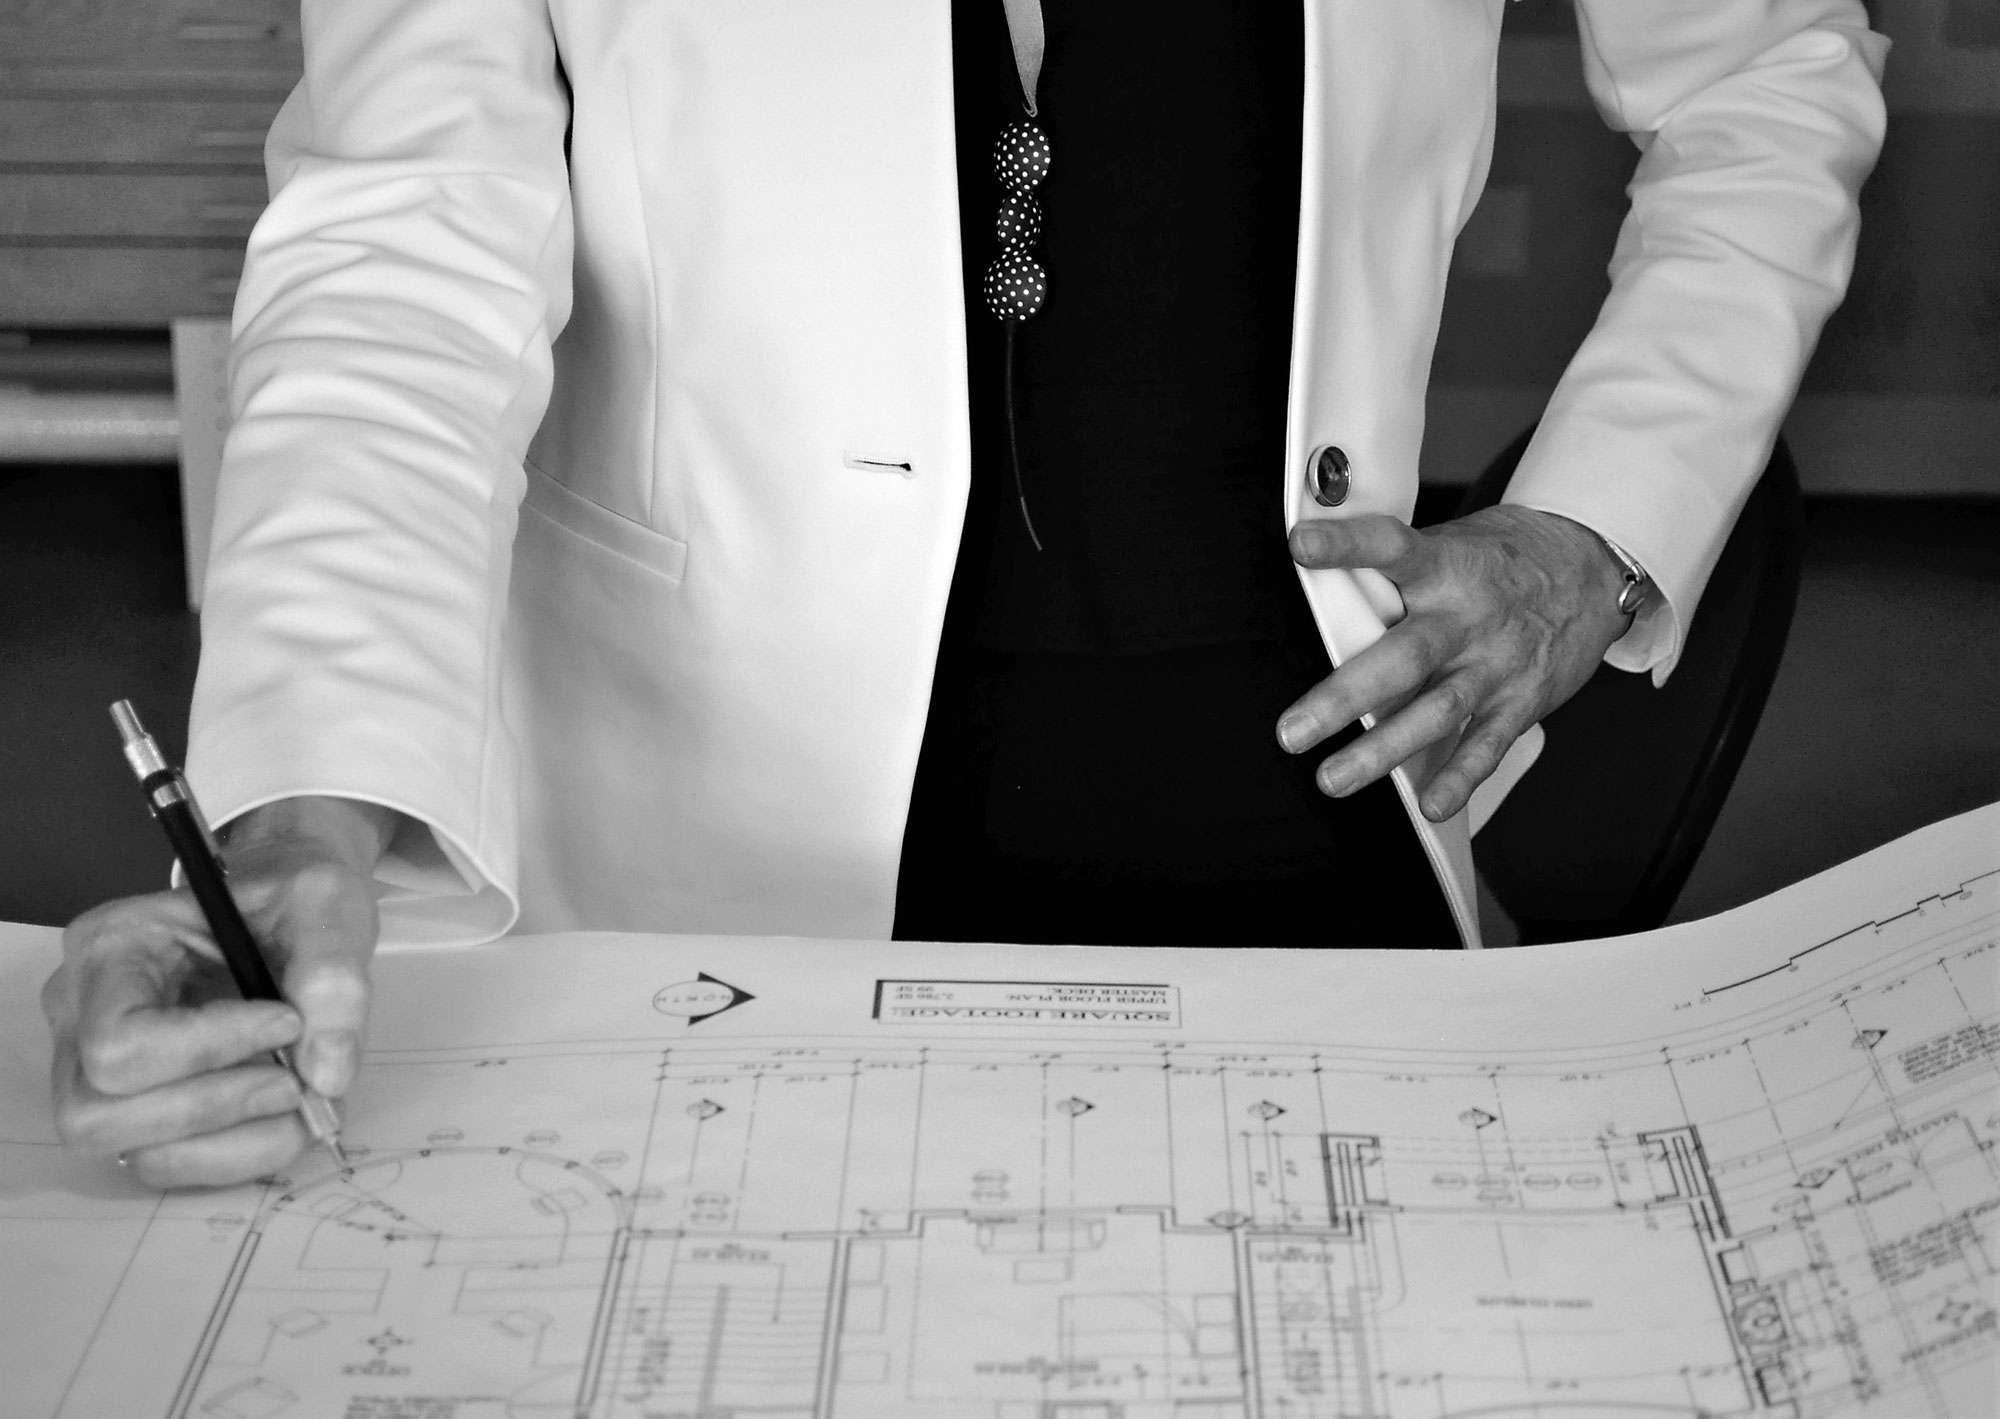 CONSTRUCTION DOCUMENTATION (Define) - The construction documentation phase entails the working drawings, details and written specifications necessary for your architecture and construction team to estimate costs and build your project. The drawings and specifications are delivered to you and your team to ensure a cohesive and coordinated design. Your project package becomes your manual and record of the project.